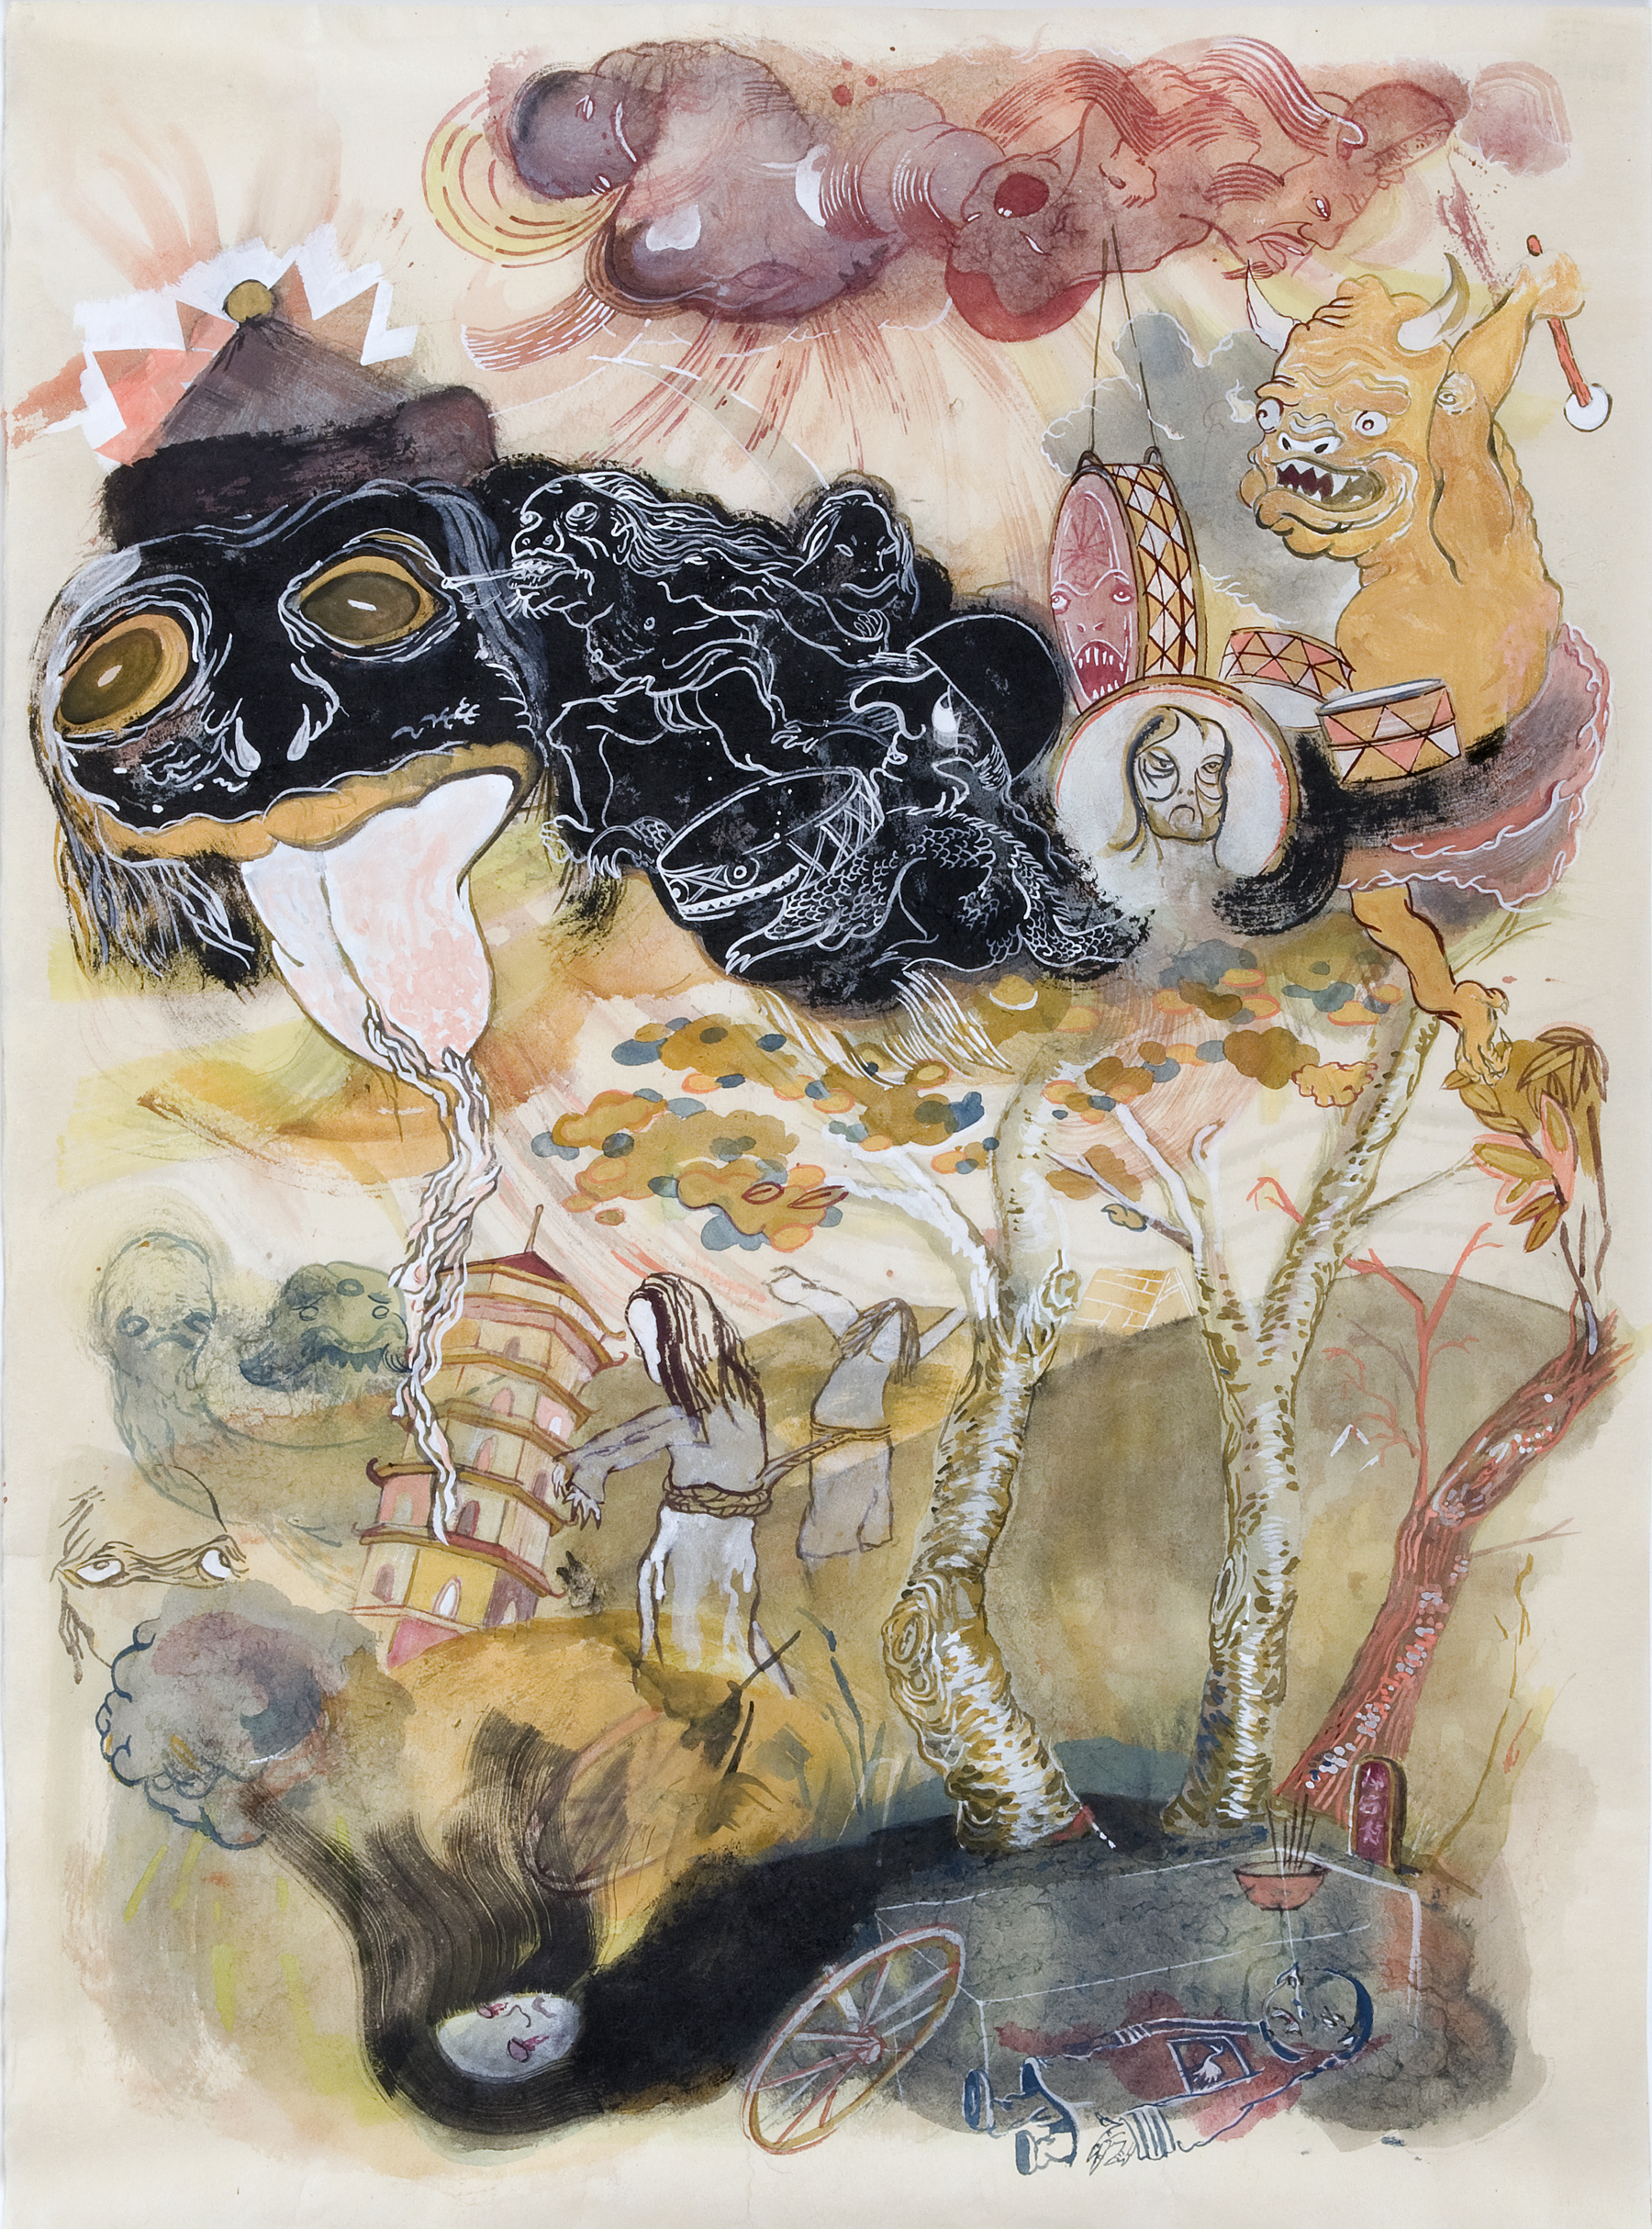 Howie Tsui 徐浩恩, Storm God 暴风雨之神, 2008, ink and paint pigments on mulberry paper 桑皮纸、颜料与墨, 47 x 64 cm